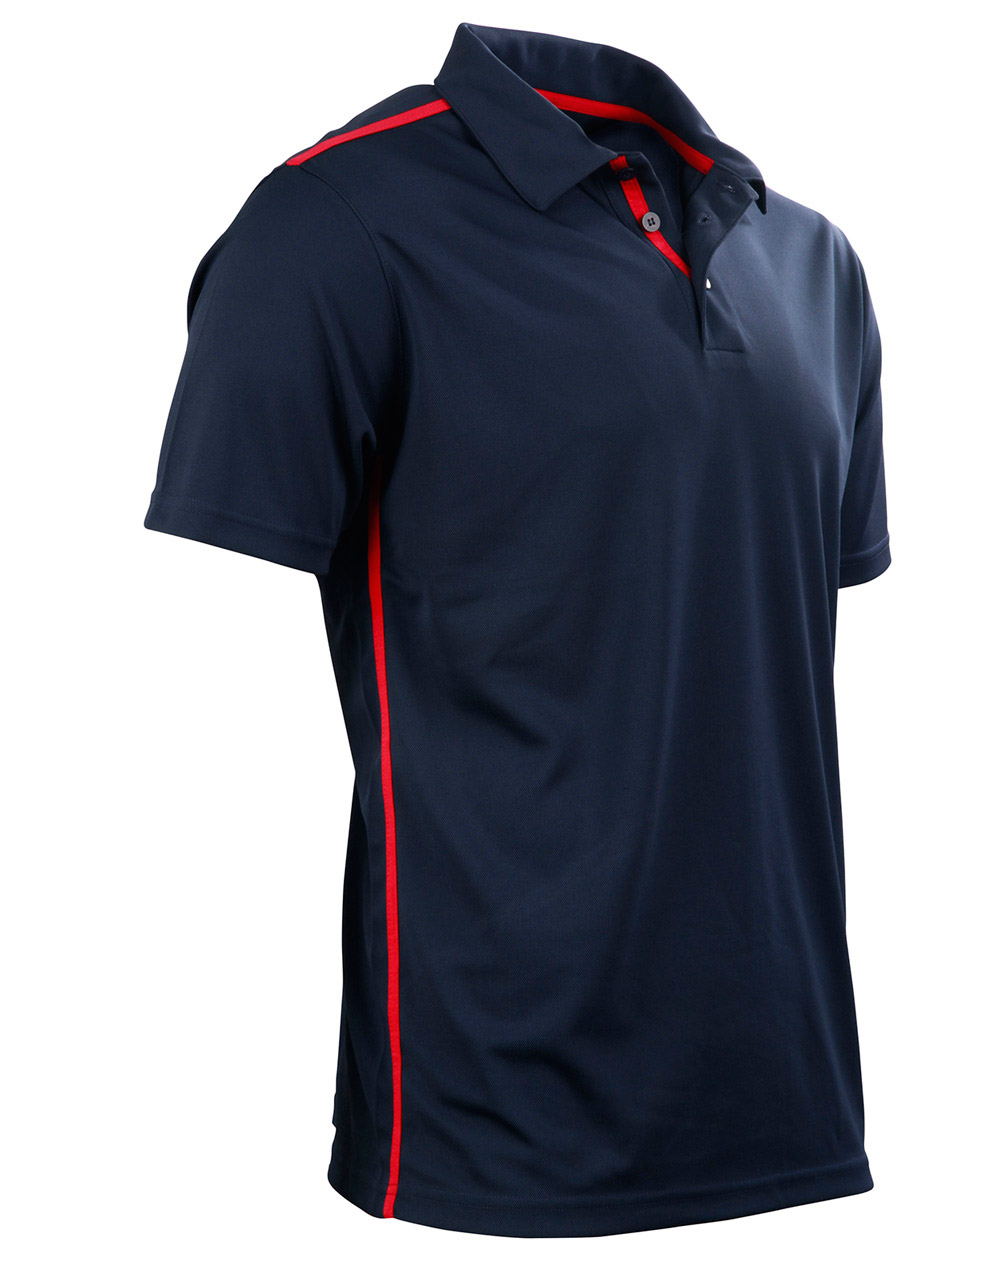 https://s3-ap-southeast-1.amazonaws.com/ws-imgs/POLOSHIRTS/PS83_NavyRed_Side.jpg